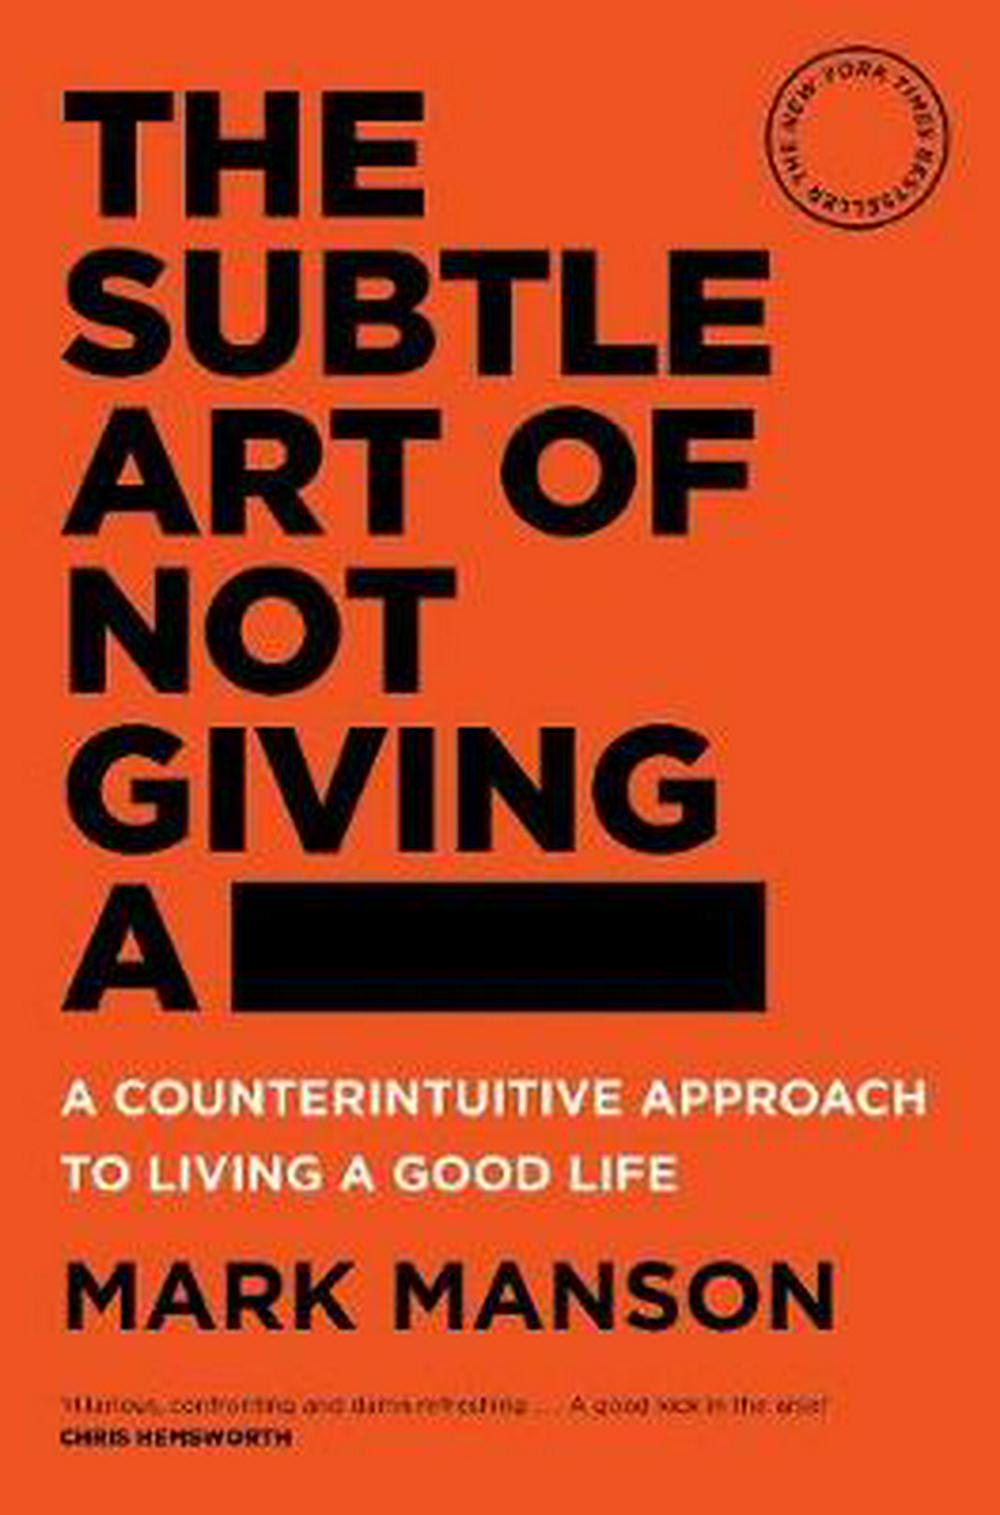 The Subtle Art of Not Giving a -A Counterintuitive Approach to Living a Good Life by Mark Manson, ISBN: 9781760558772